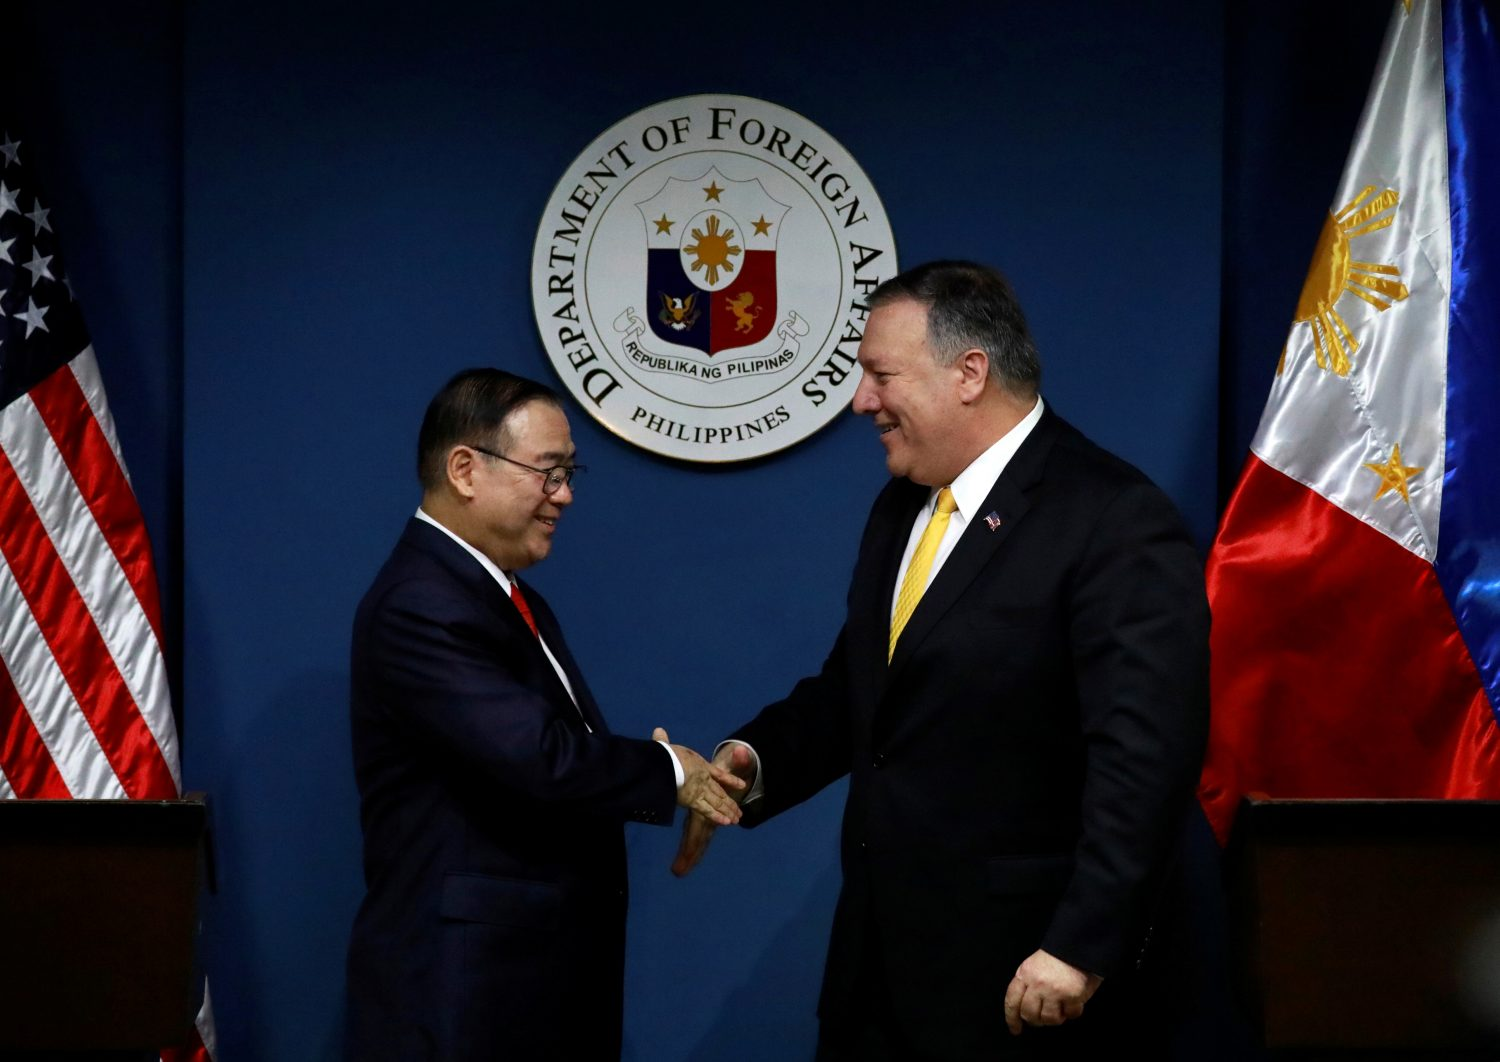 U.S. Secretary of State Mike Pompeo shakes hands with Philippine Foreign Secretary Teodoro Locsin Jr. at the Department of Foreign Affairs in Pasay City, Metro Manila, Philippines, March 1, 2019. REUTERS/Eloisa Lopez